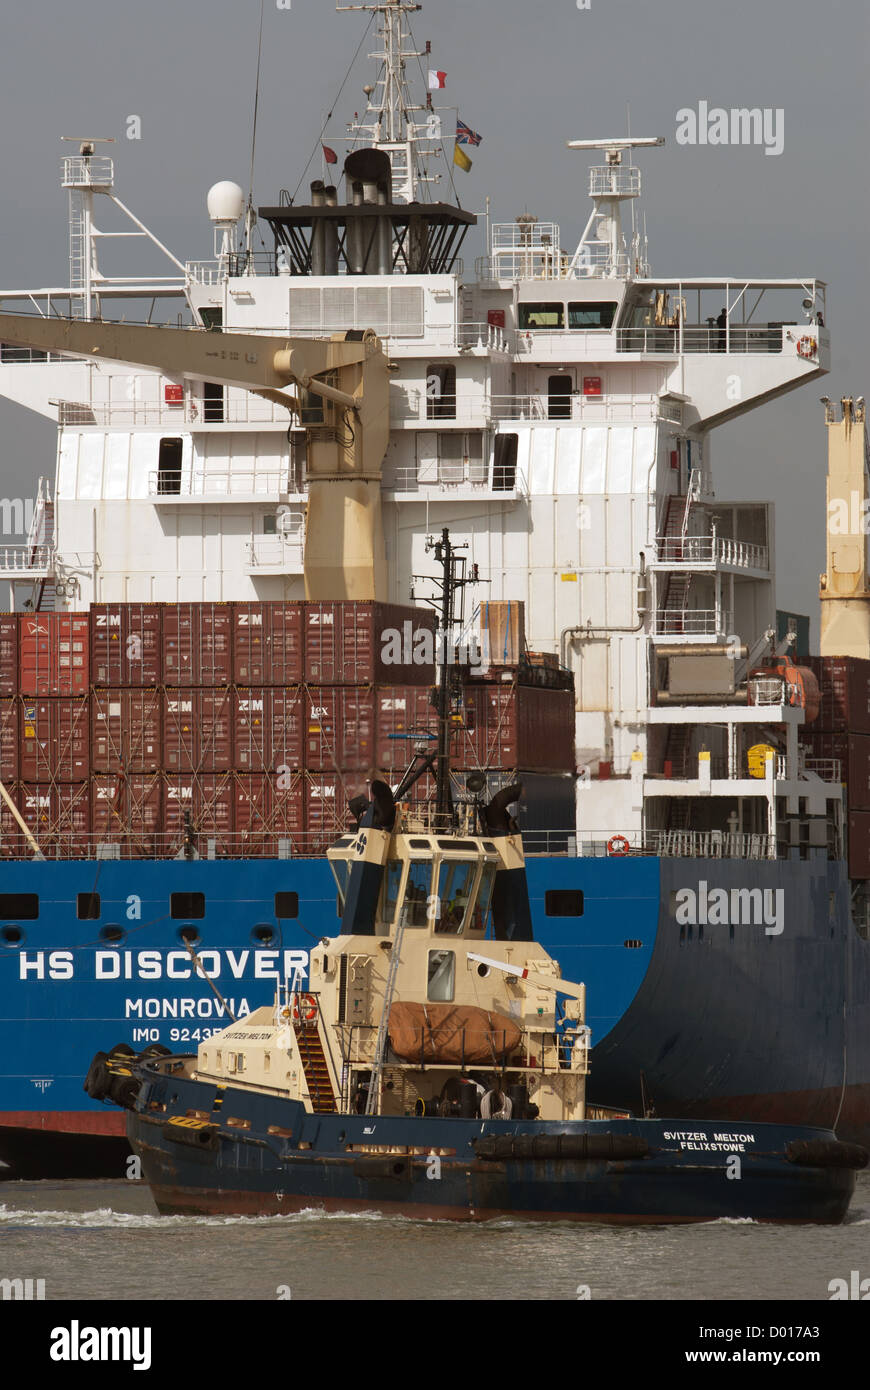 HS Discoverer container ship with tug - Stock Image